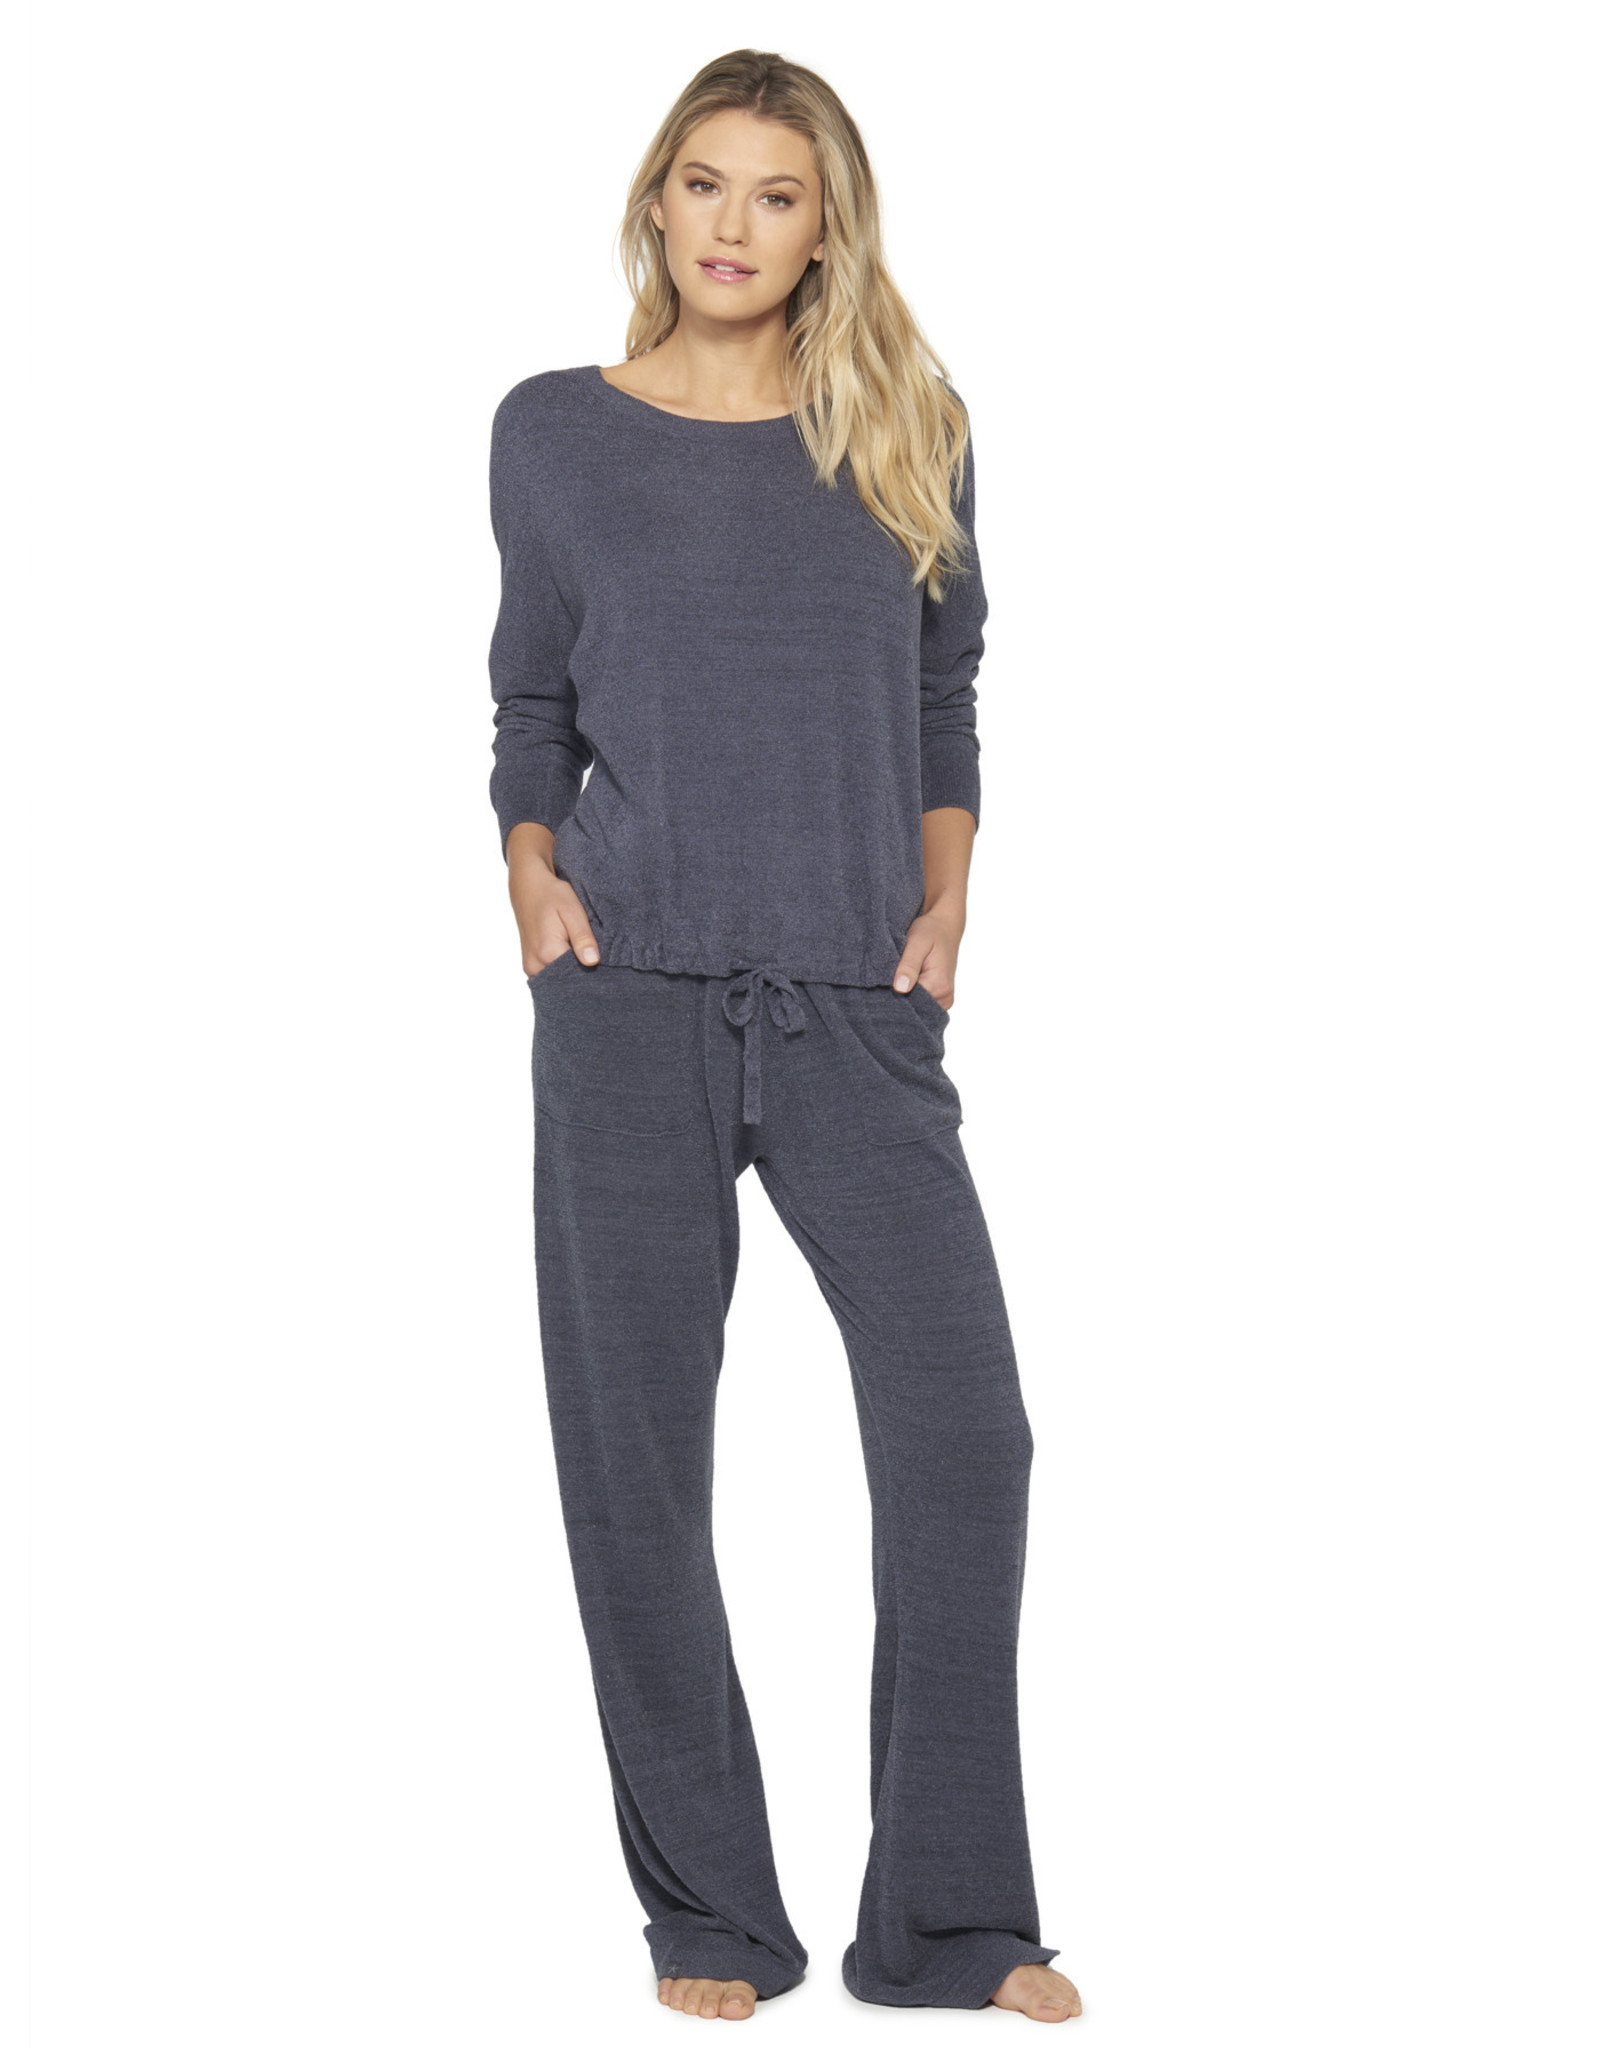 Barefoot Dreams Cozy Chic Ultra Lite Slouchy Pullover